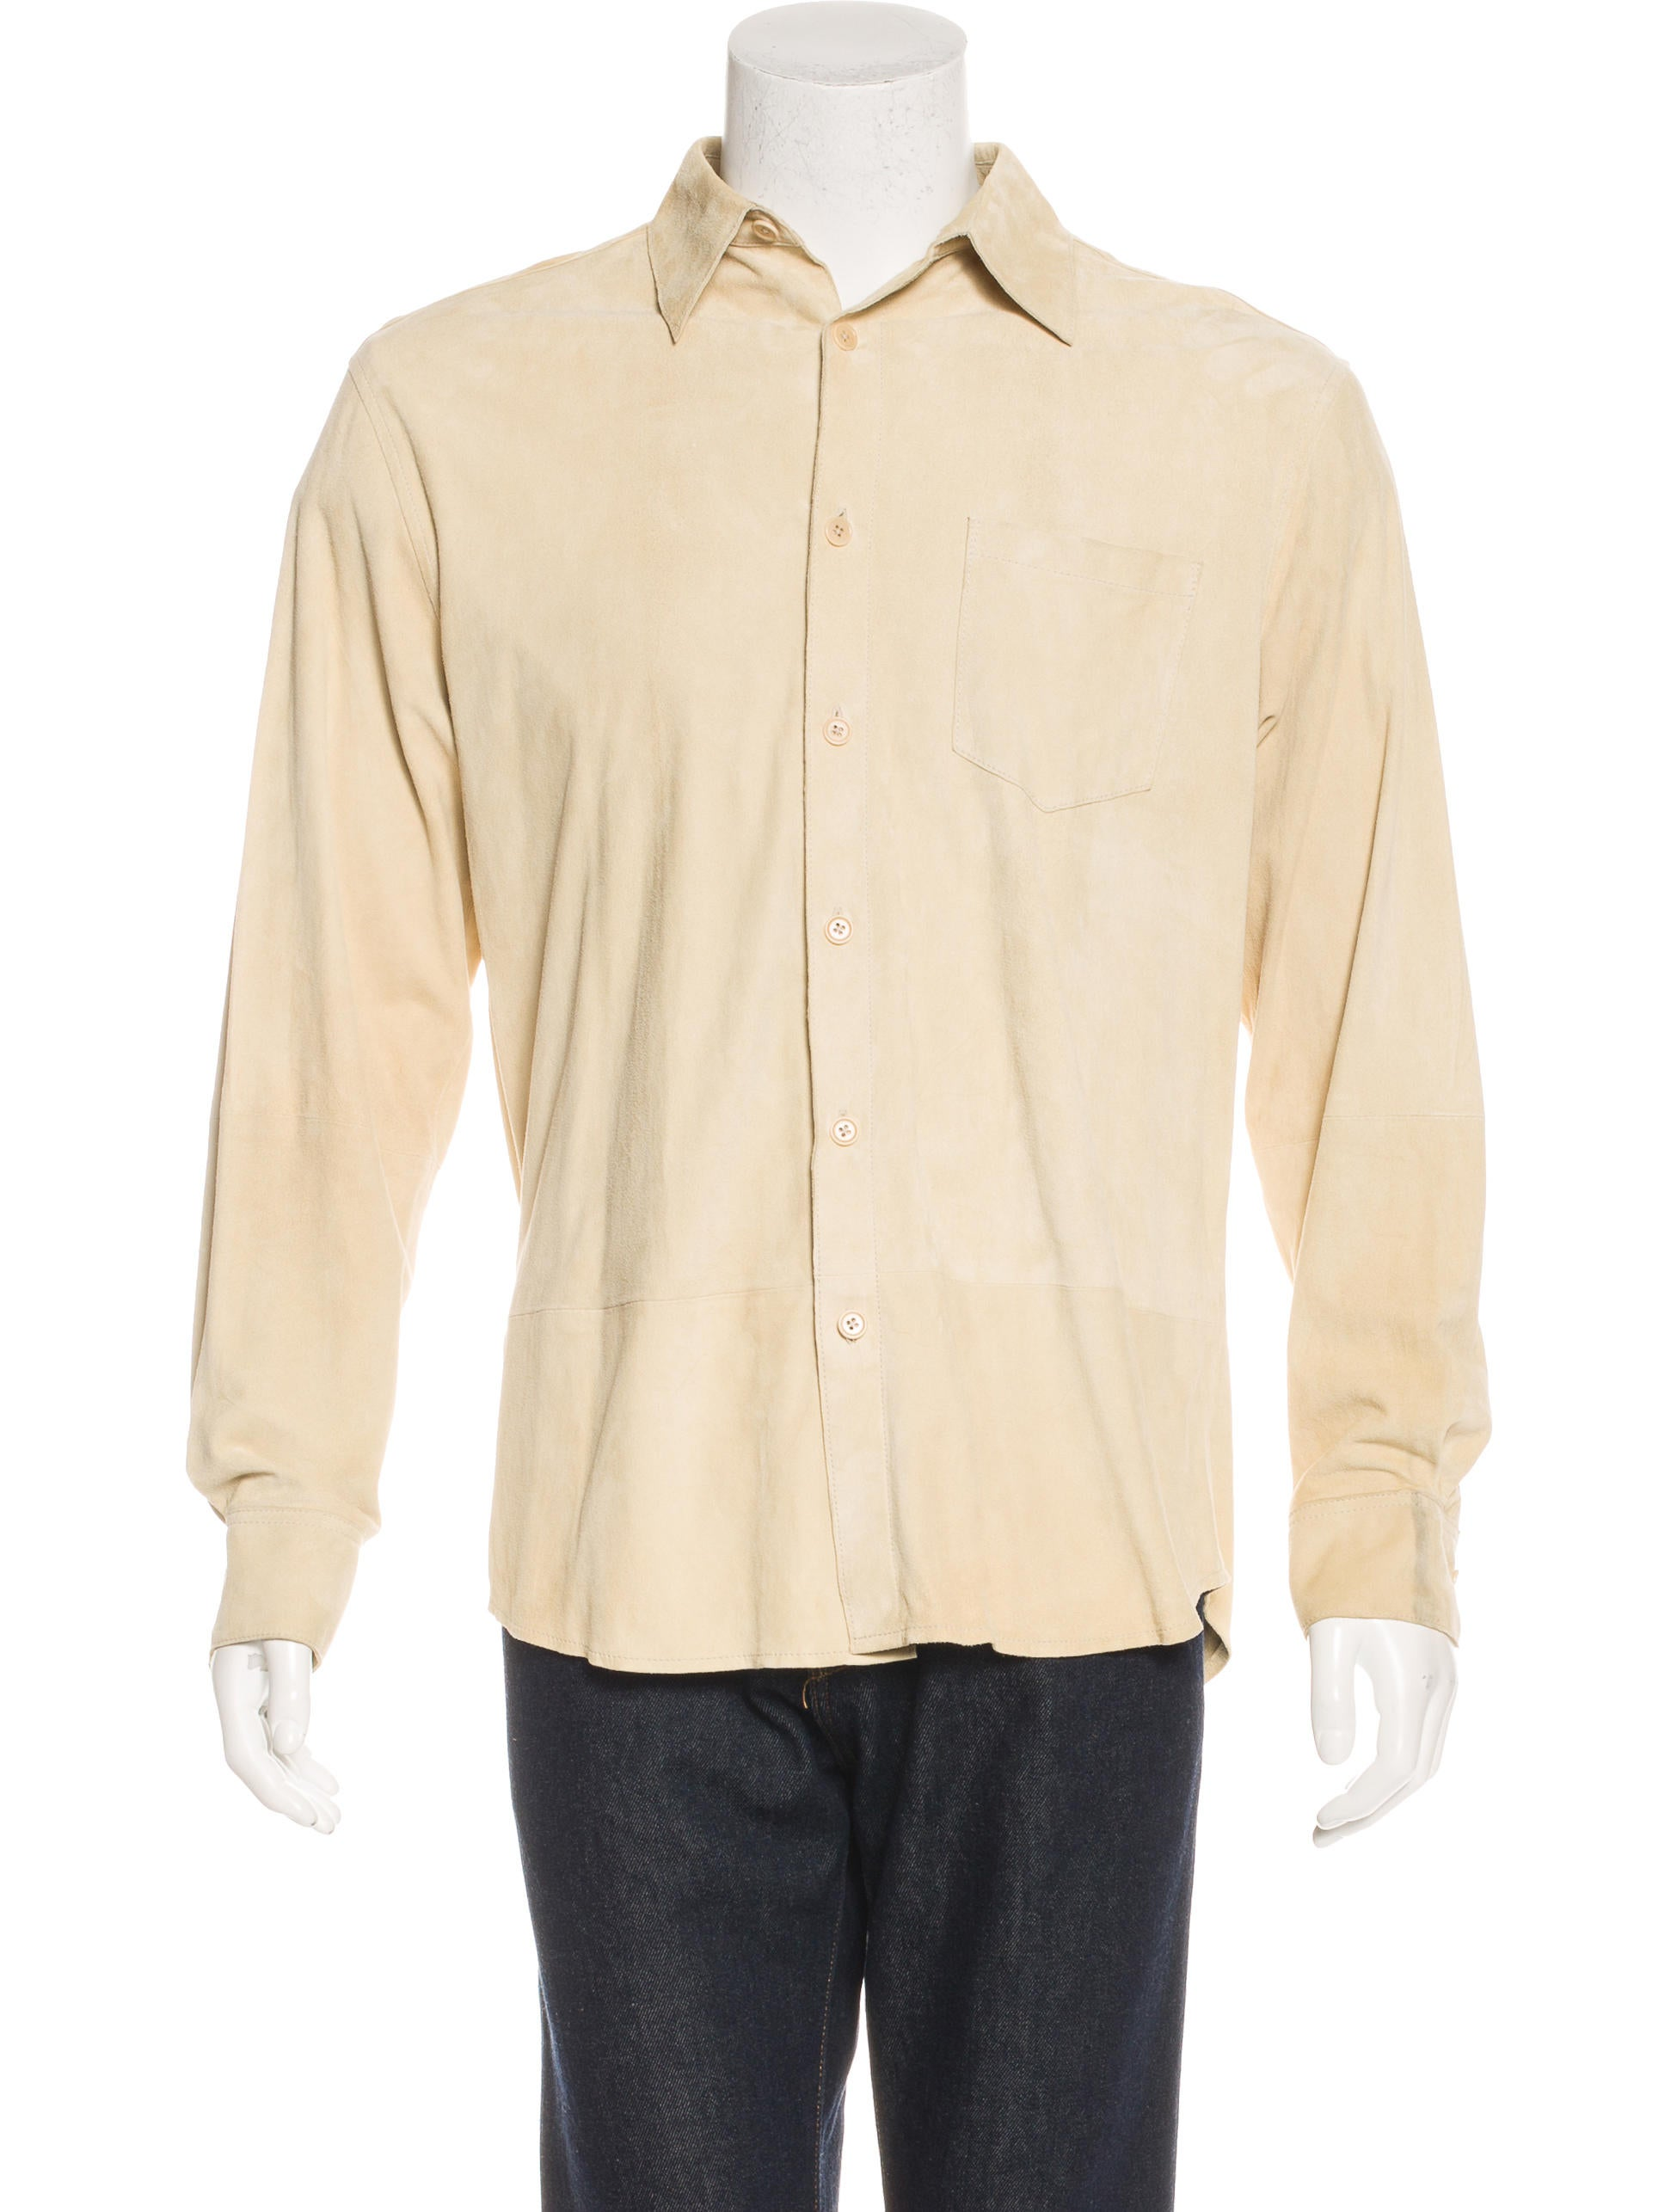 Theory Suede Shirt Jacket W Tags Clothing Wte23469